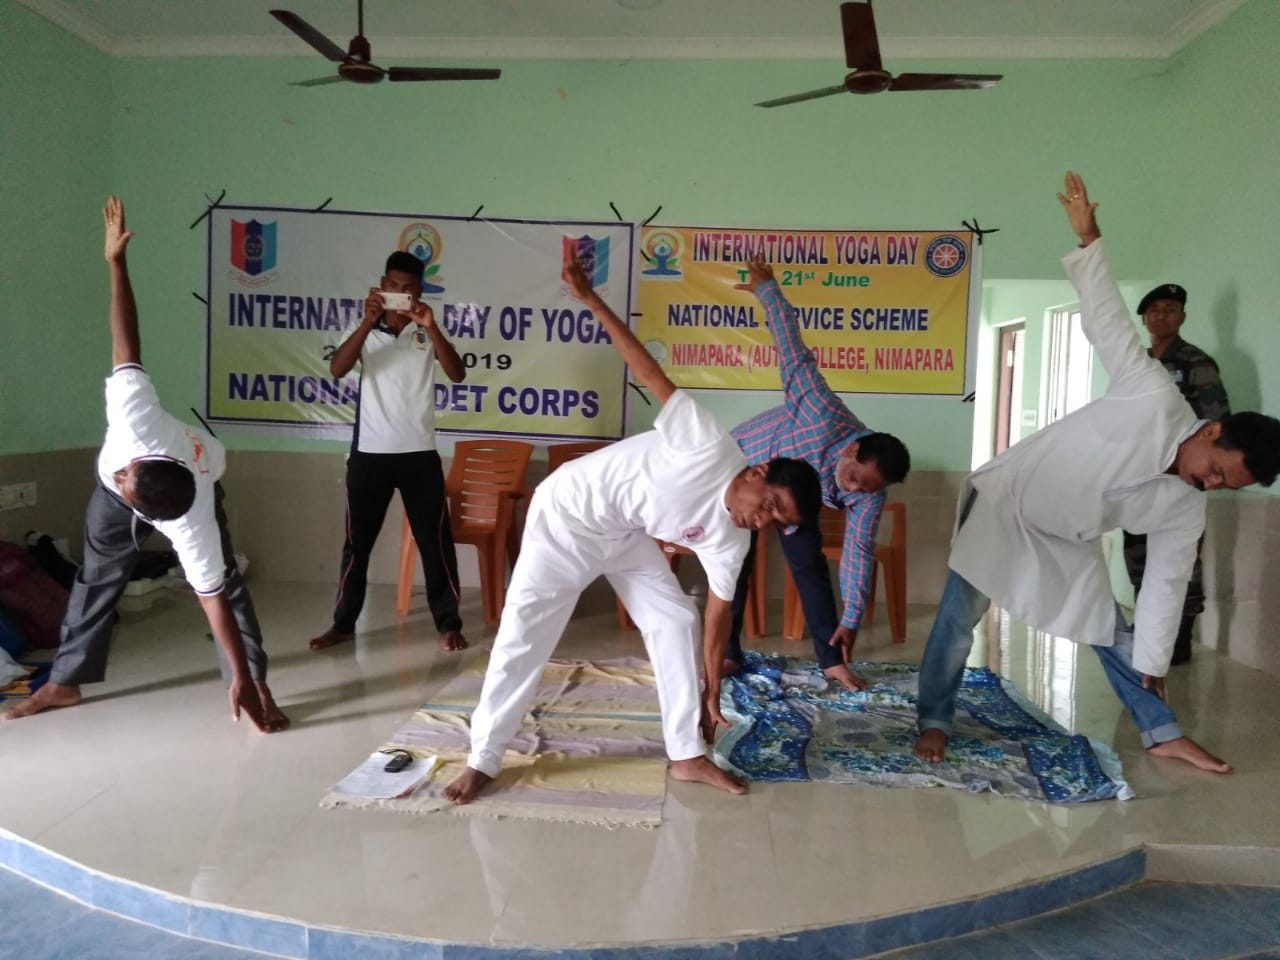 International Day of Yoga by Yoga Guru Gauranga Sahoo Practising